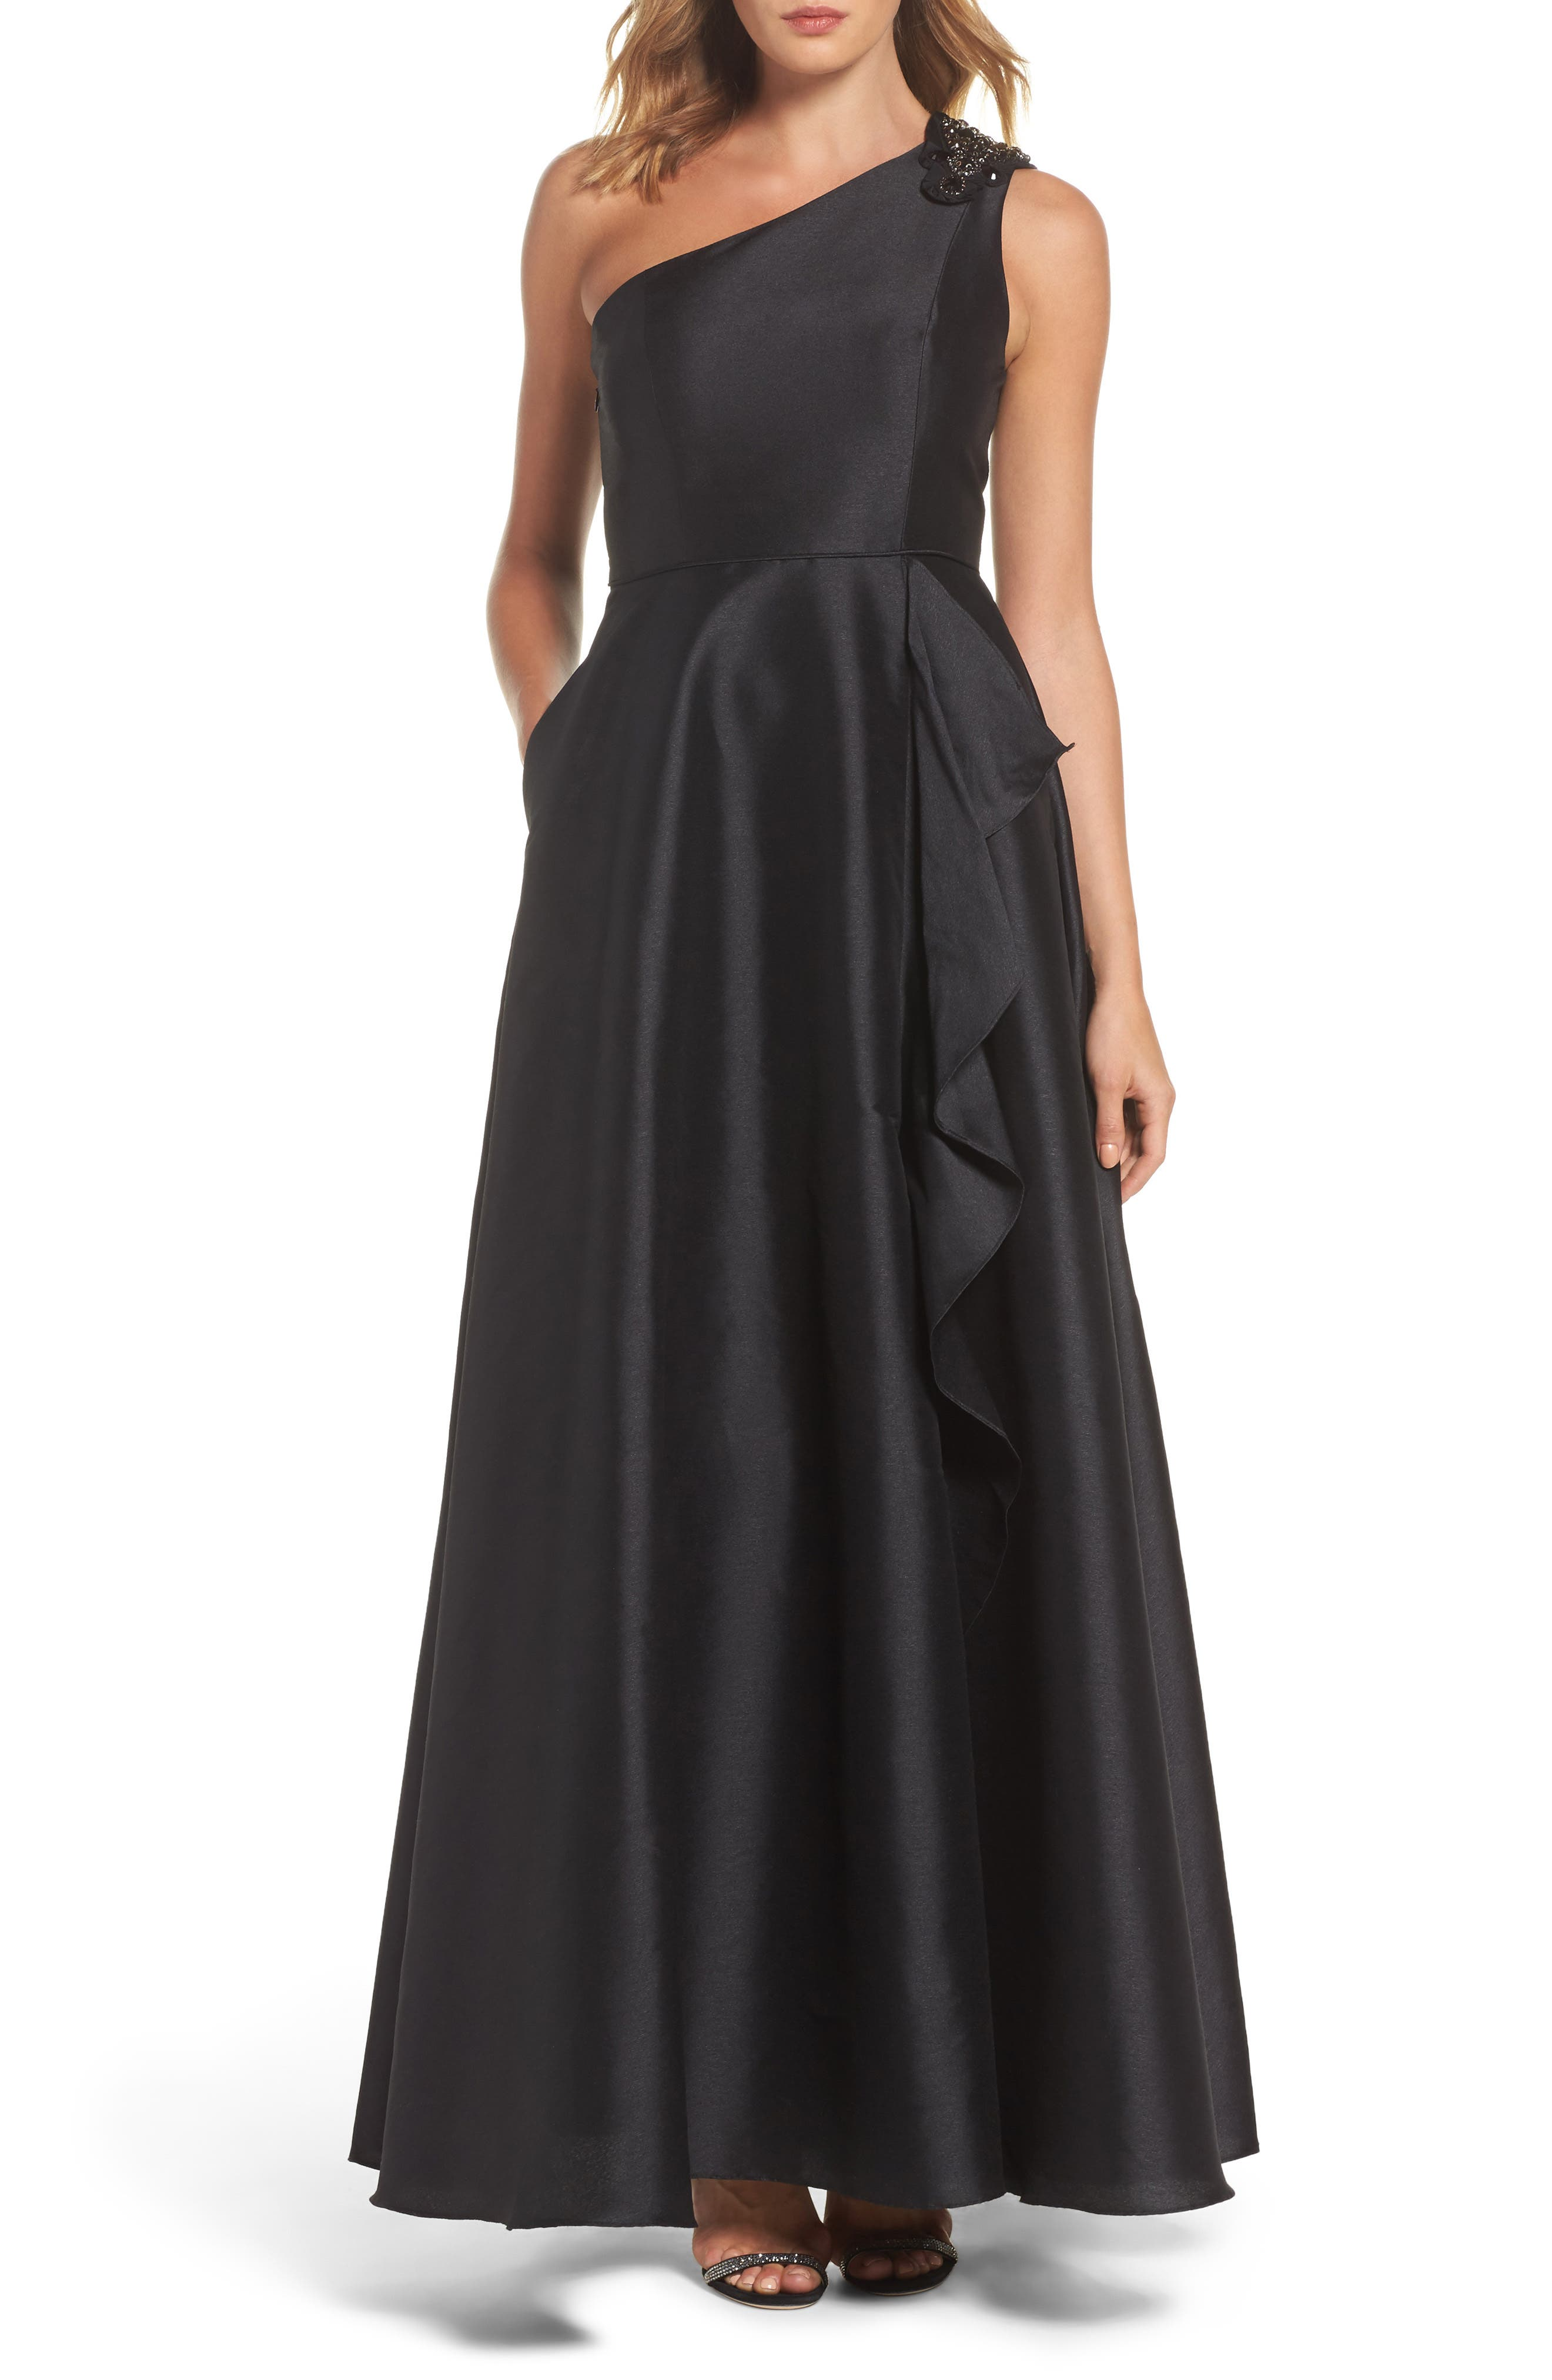 Alternate Image 1 Selected - Adrianna Papell Embellished One-Shoulder Drape Faille Gown